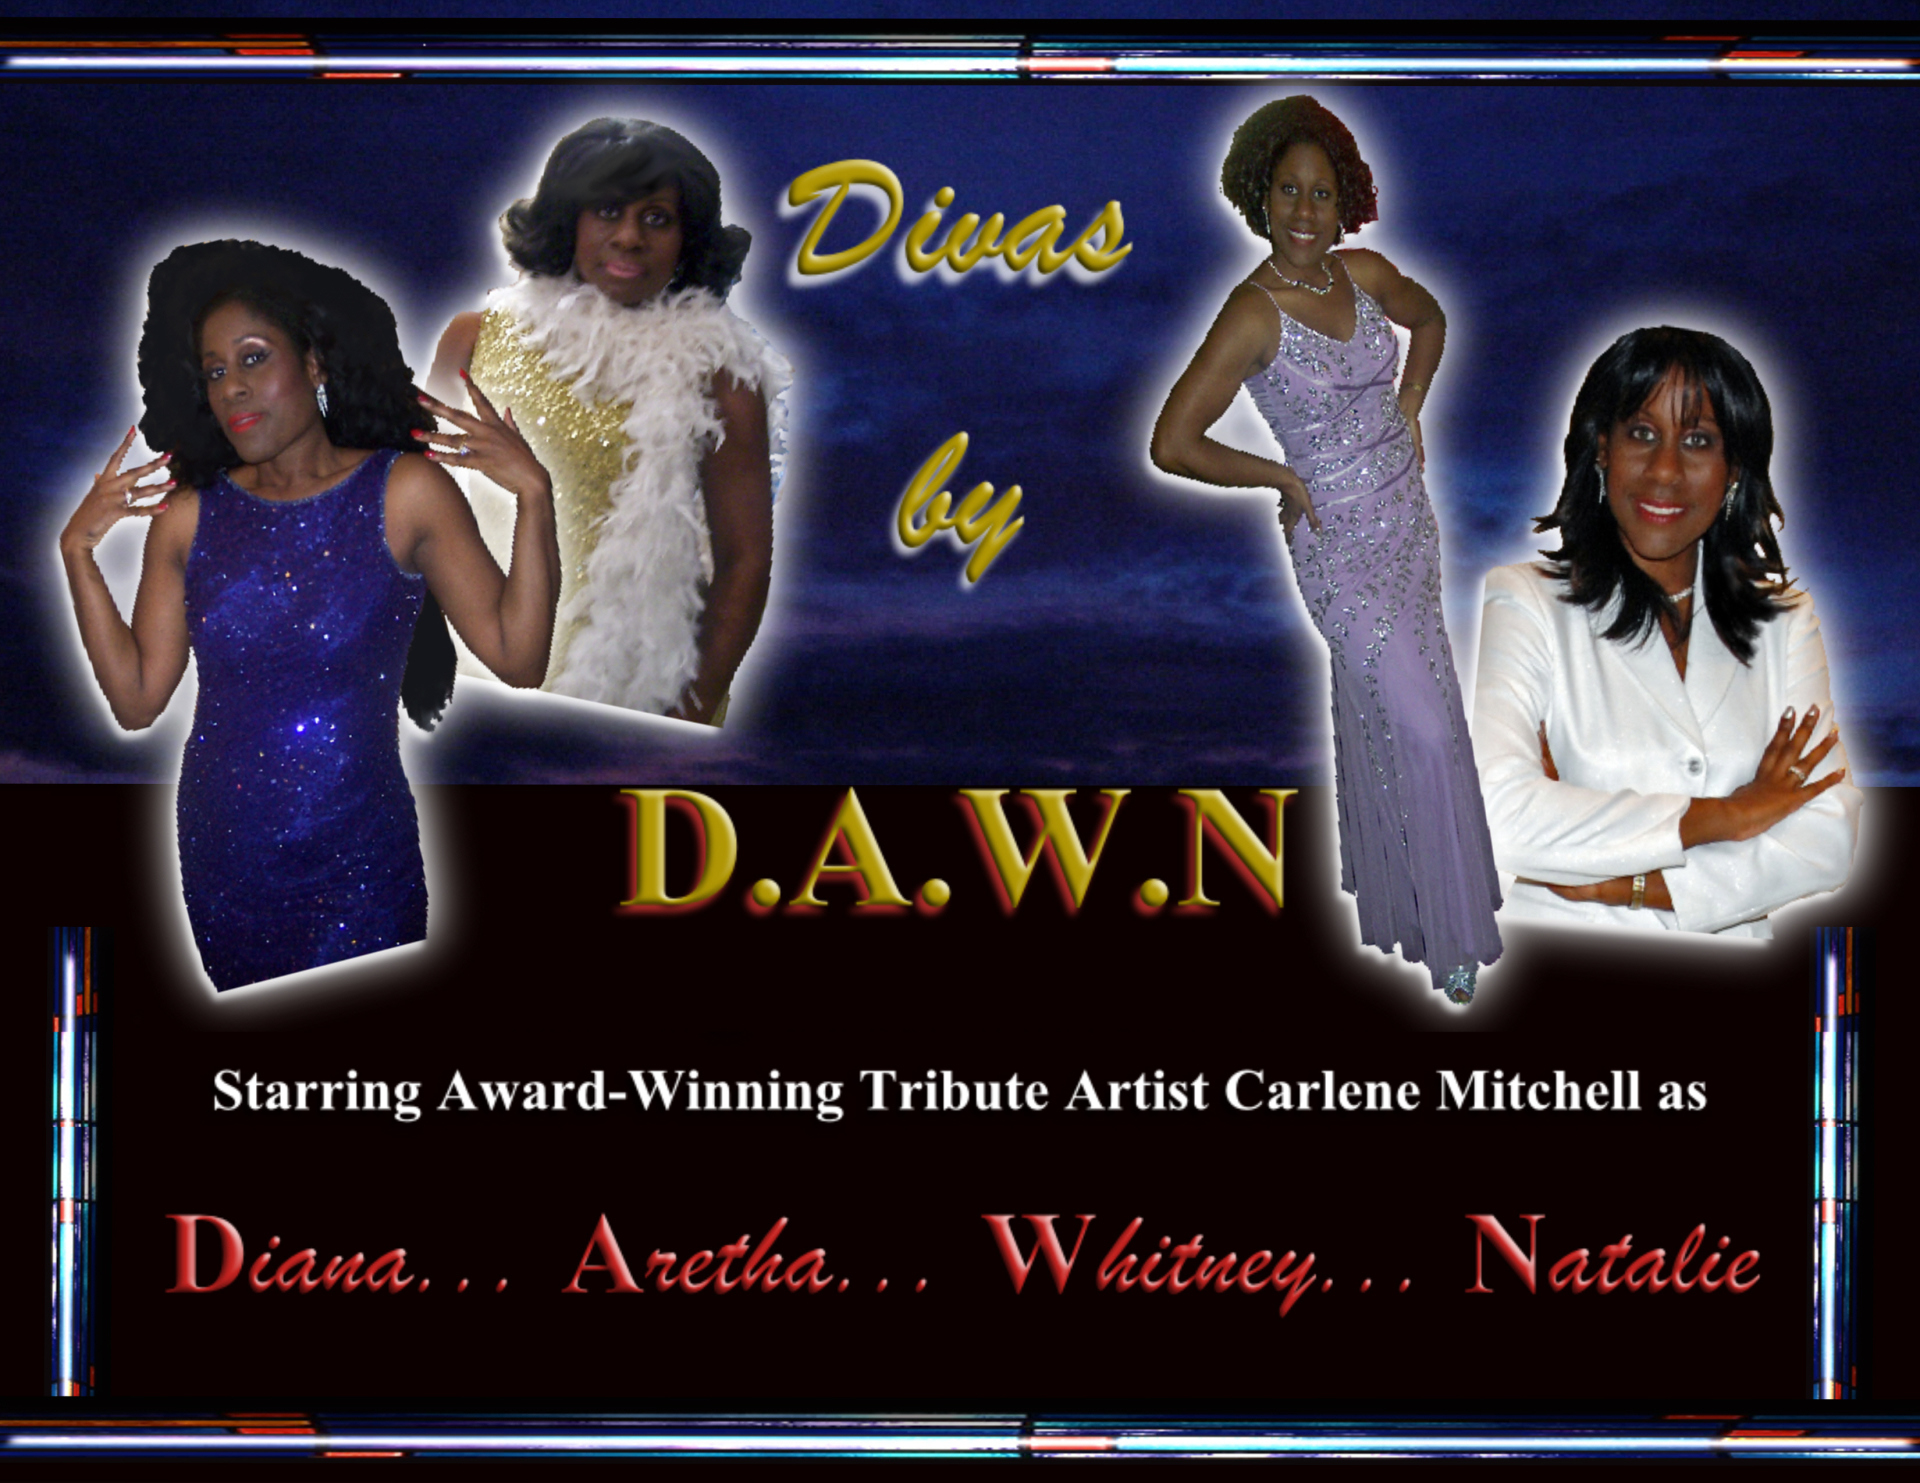 Divas by D.A.W.N.- A Tribute To Diana, Aretha, Whitney, and Natalie